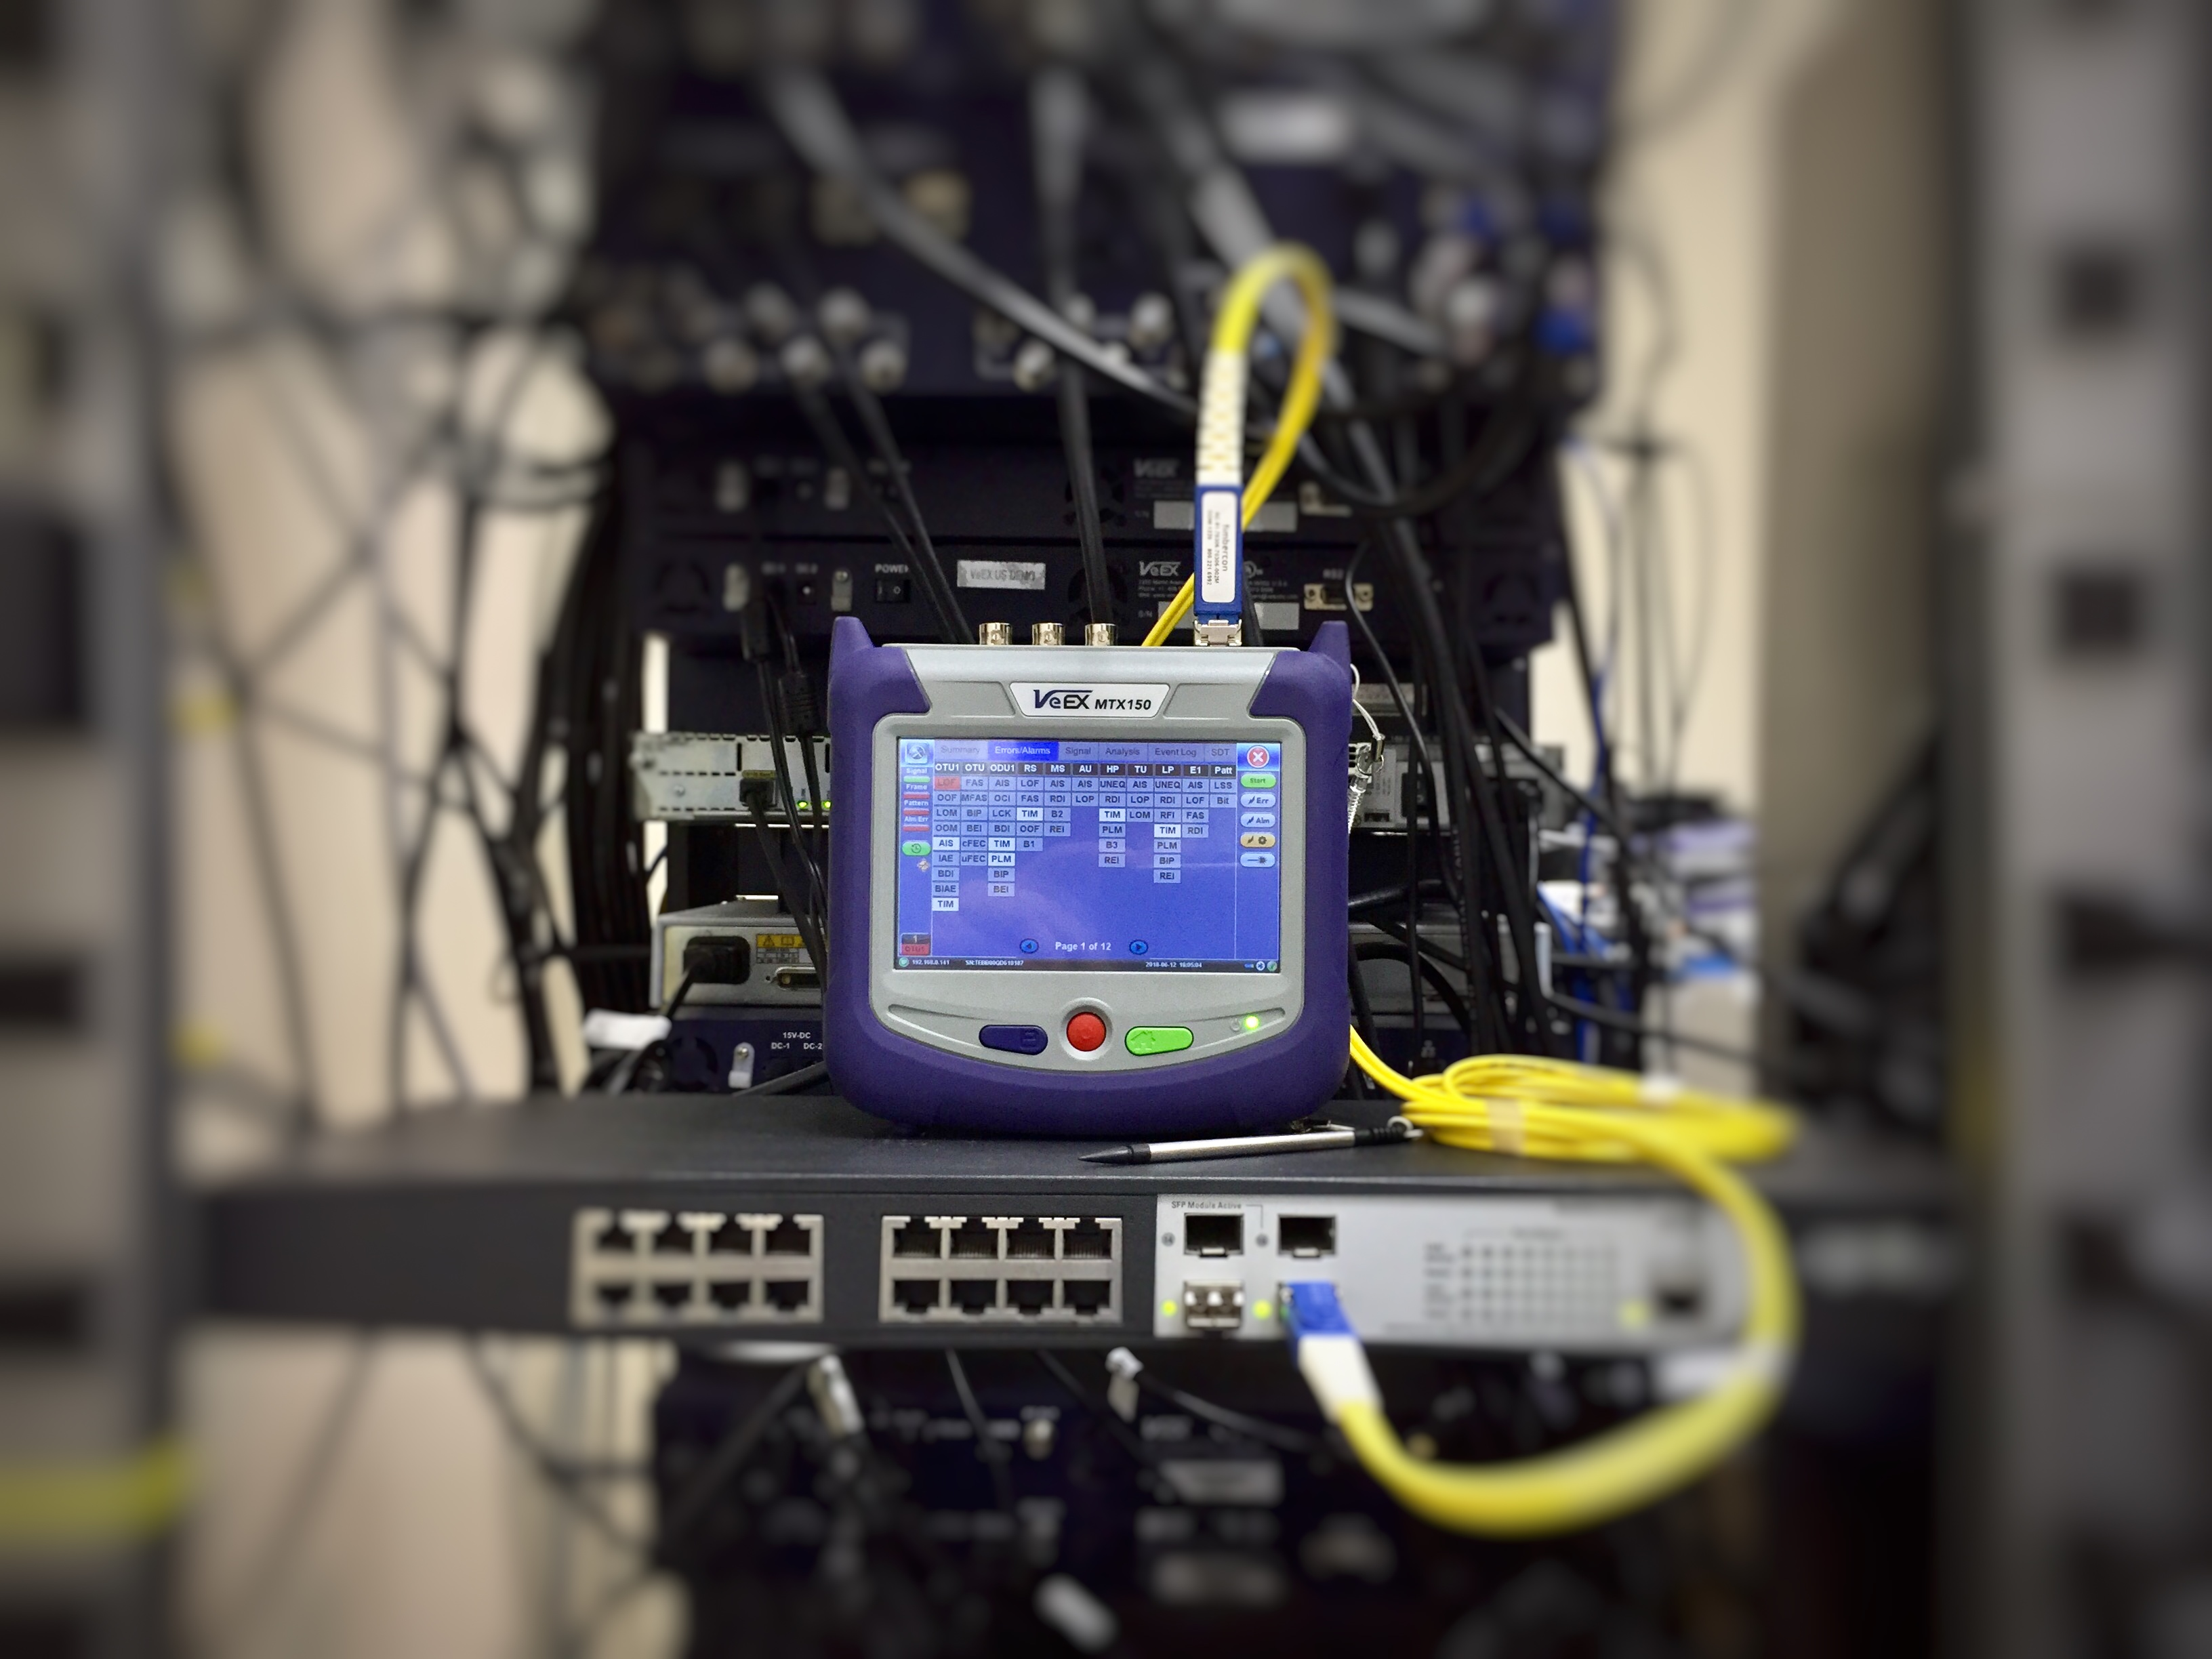 HE IPv6 tunnel with Ubnt EdgeMax Lite router